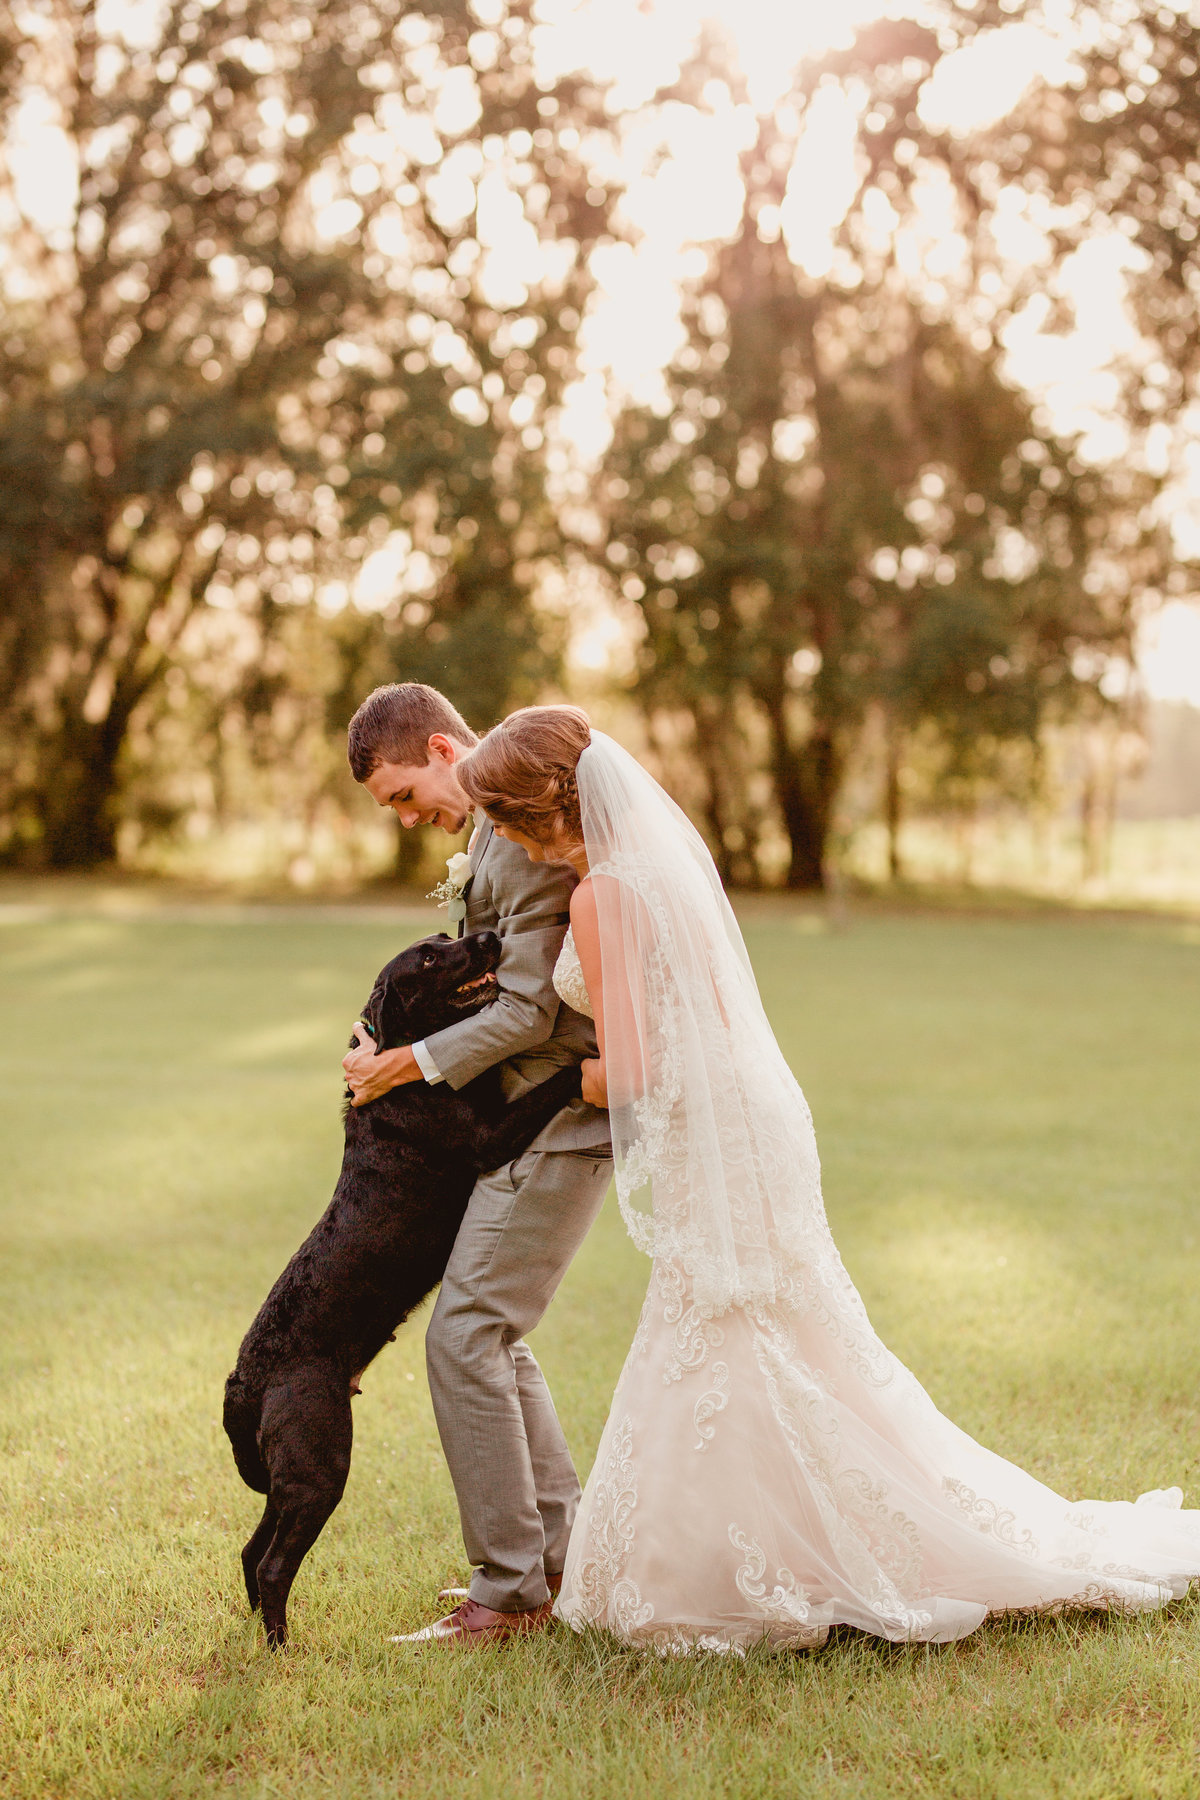 Wedding photography using the couples dog during portraits at Southern Pines, Lake City, FL.